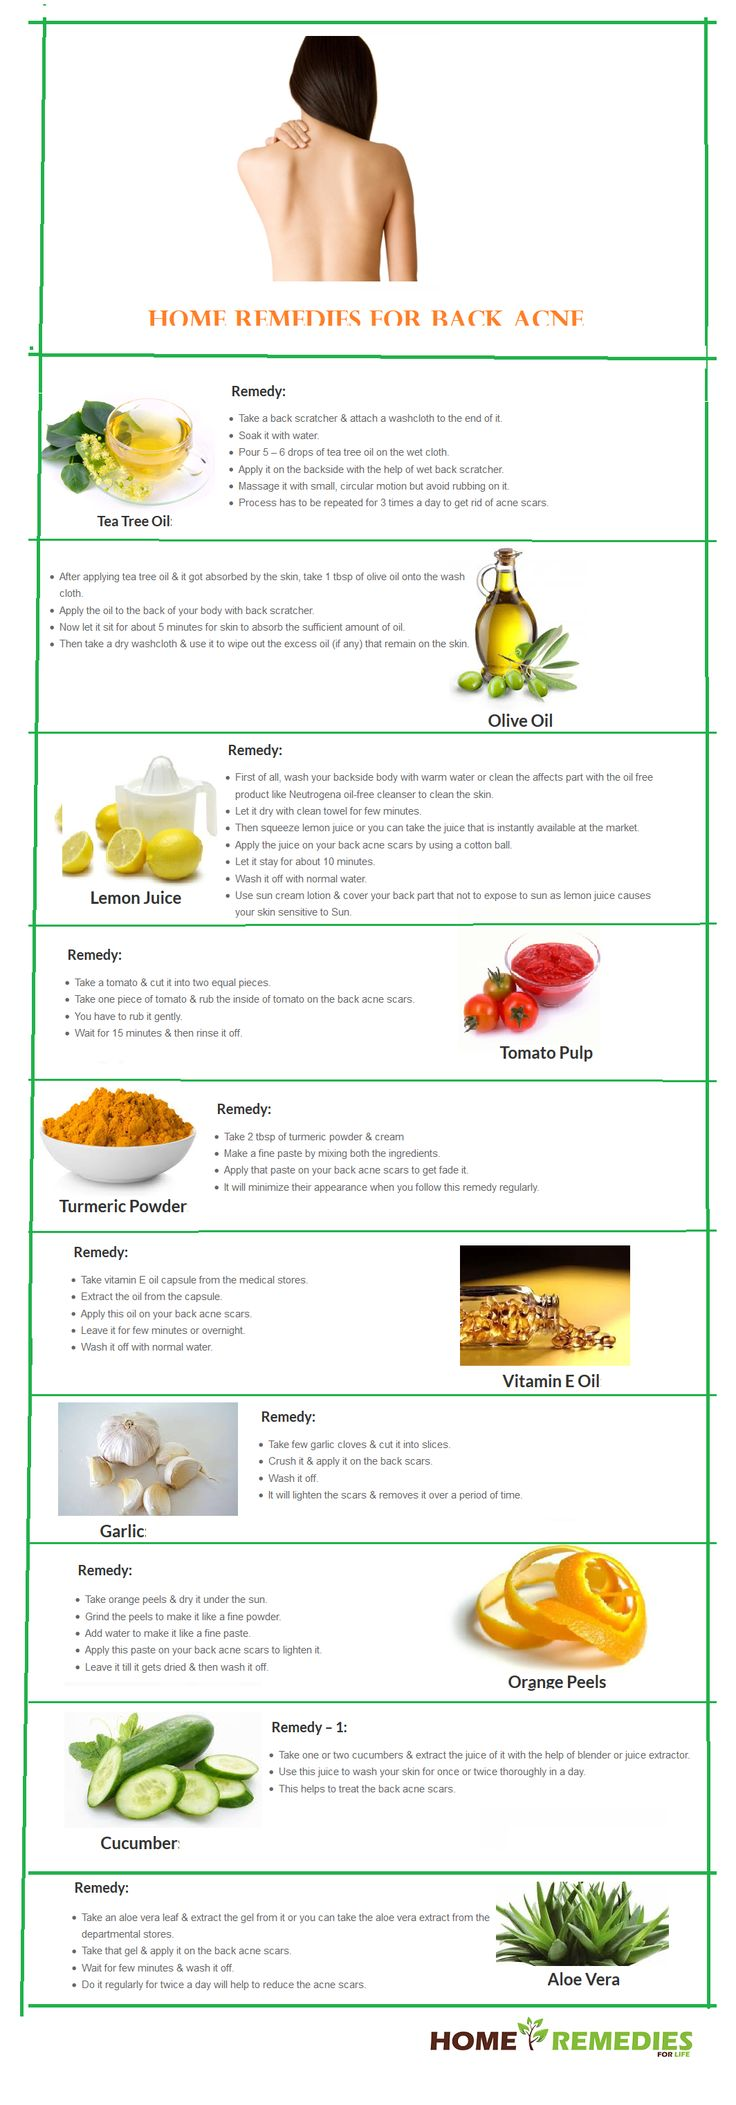 DIY Home Remedies for Back Acne Scars